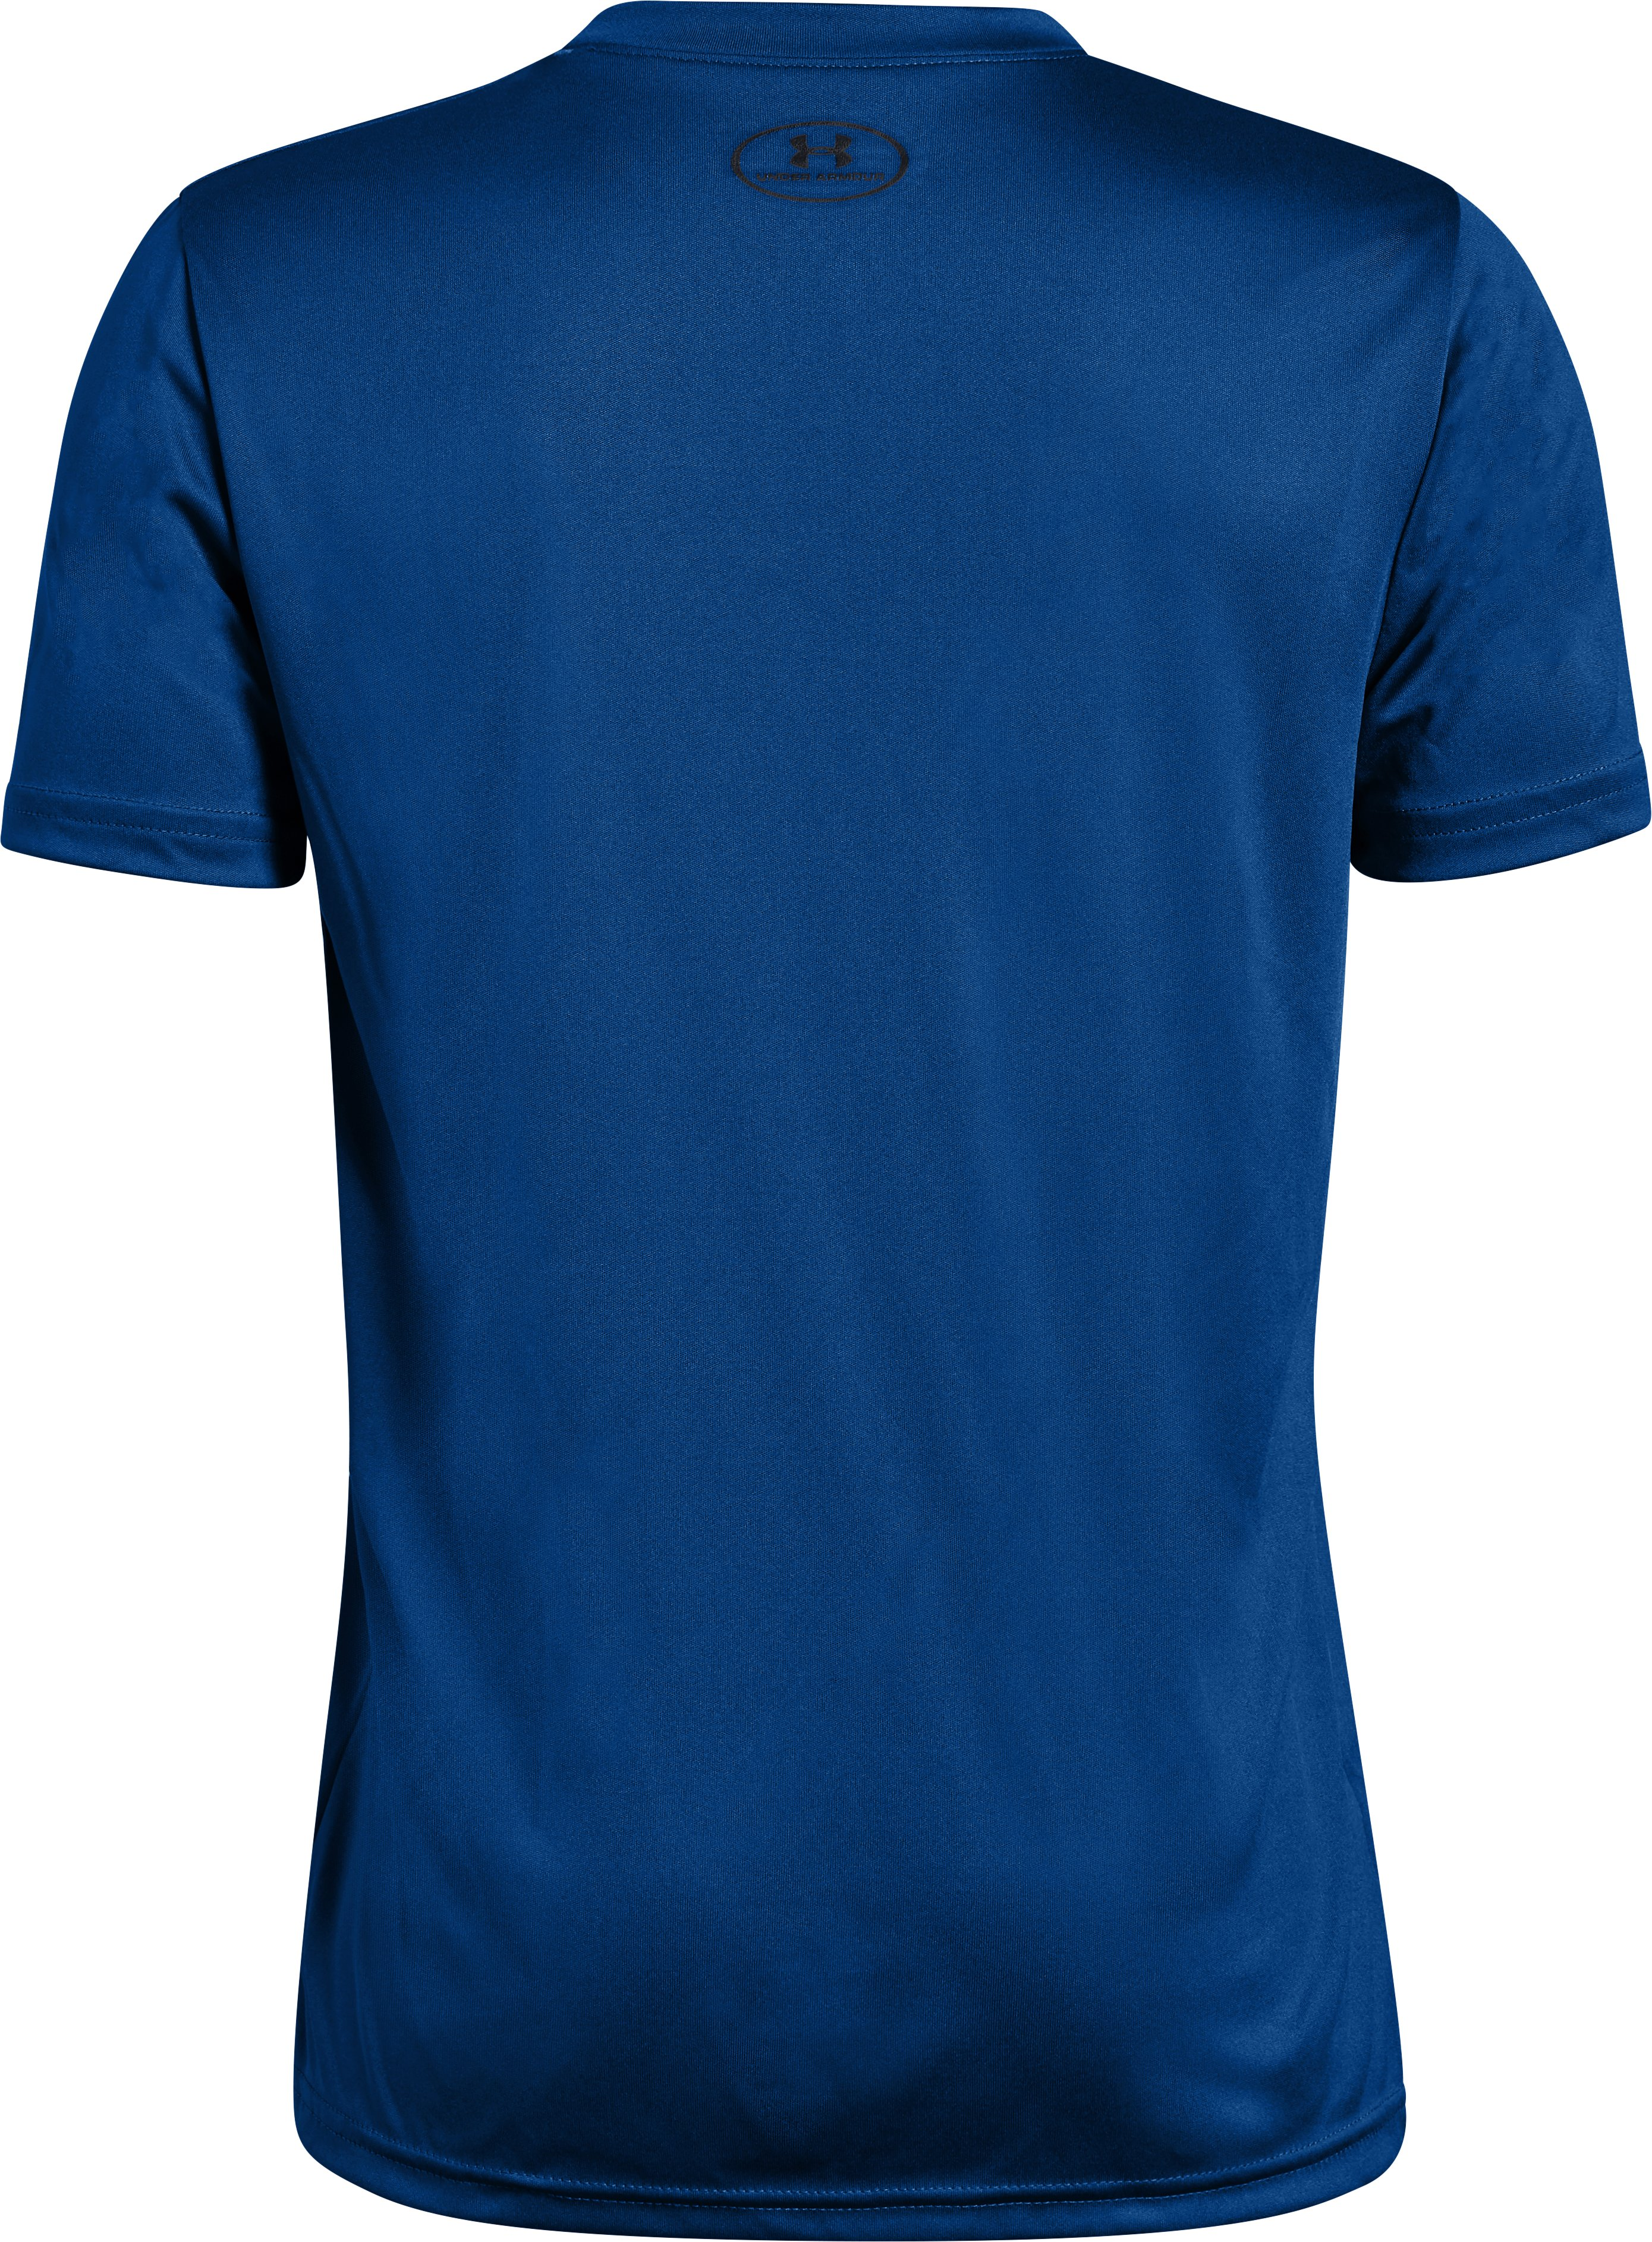 Boys' UA Absolute Beast Short Sleeve T-Shirt, Royal,